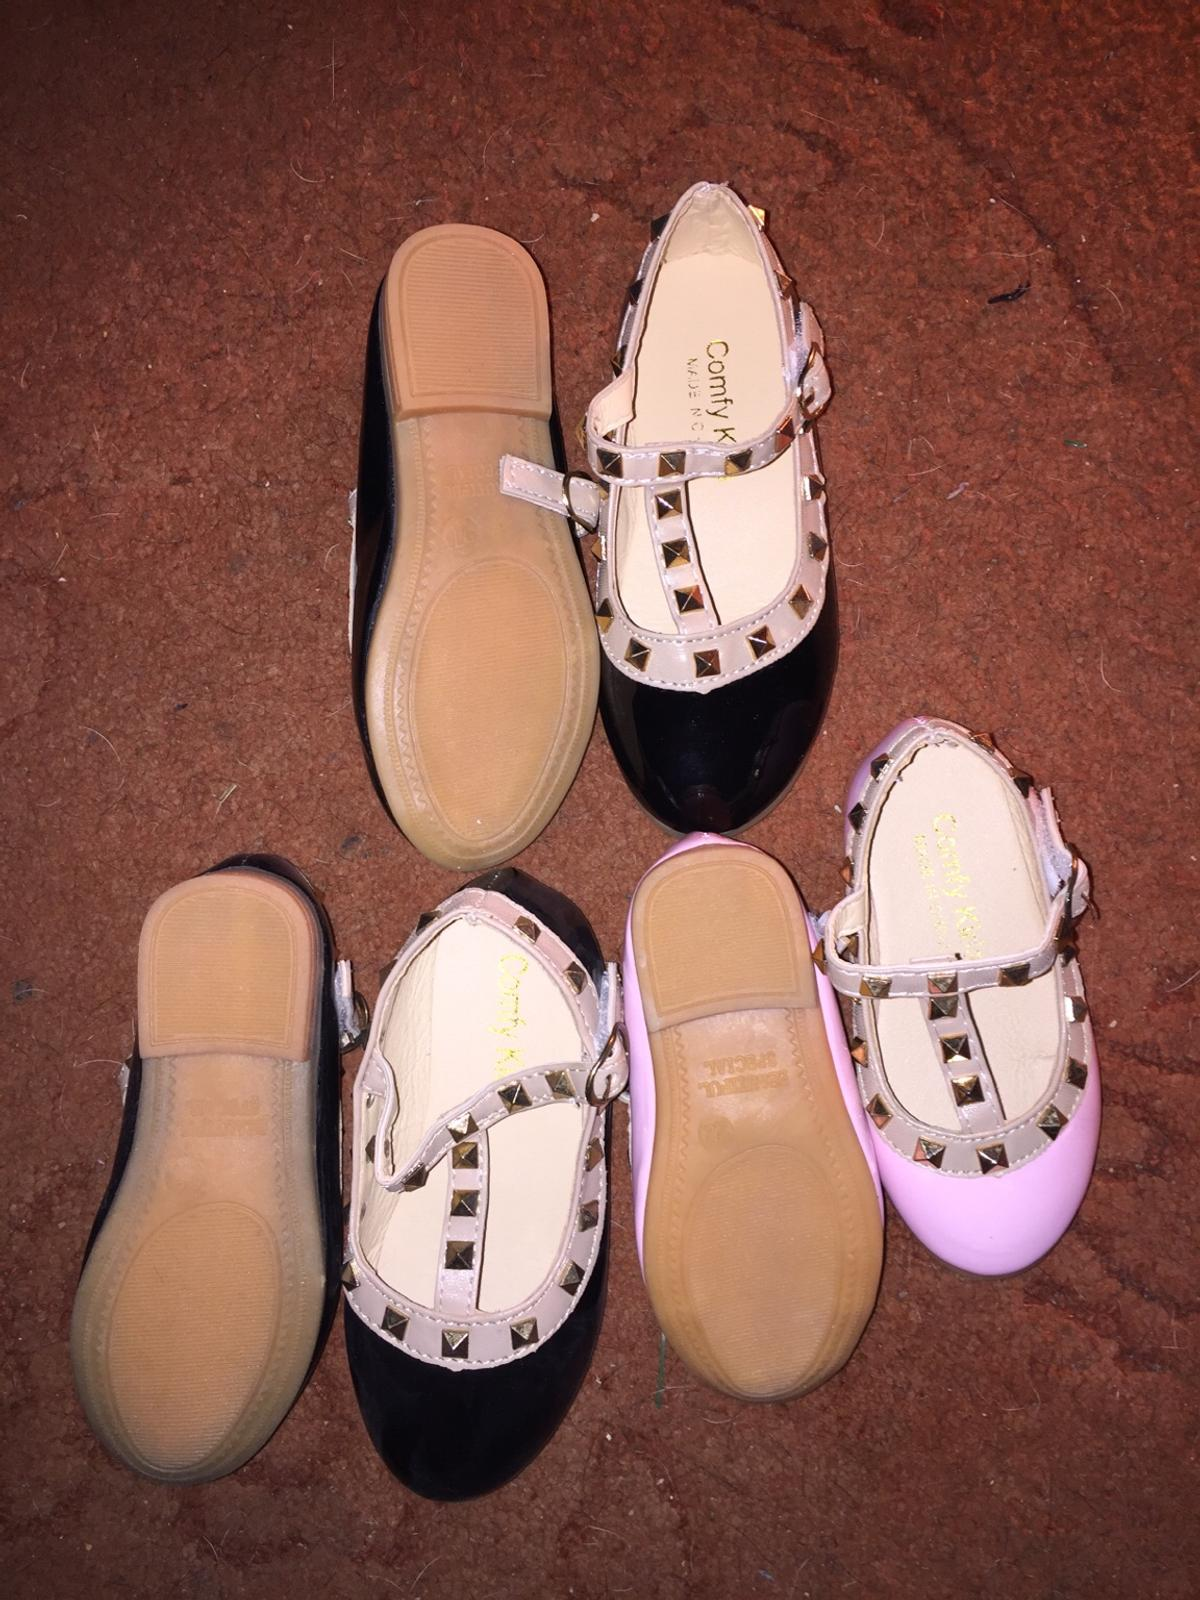 Brand new girls shoes sizes pink 22 and black 26,27 £2.50 each pair collection Bromley common